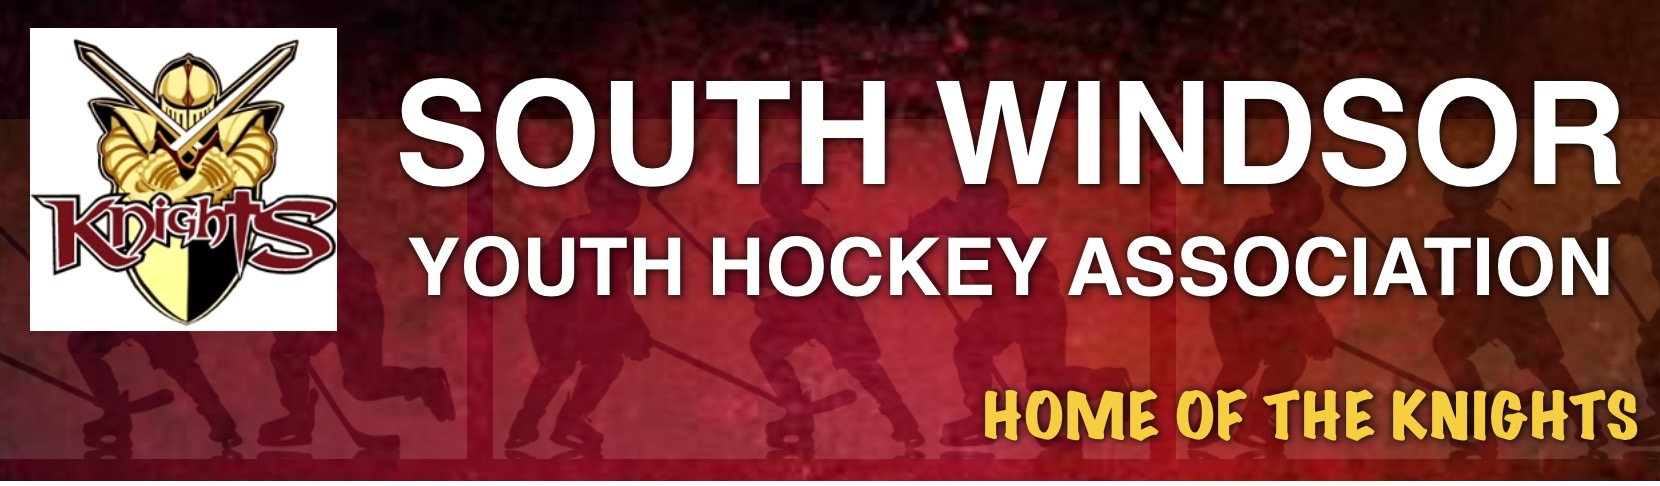 South Windsor Youth Hockey Association, Hockey, Goal, South Windsor Arena